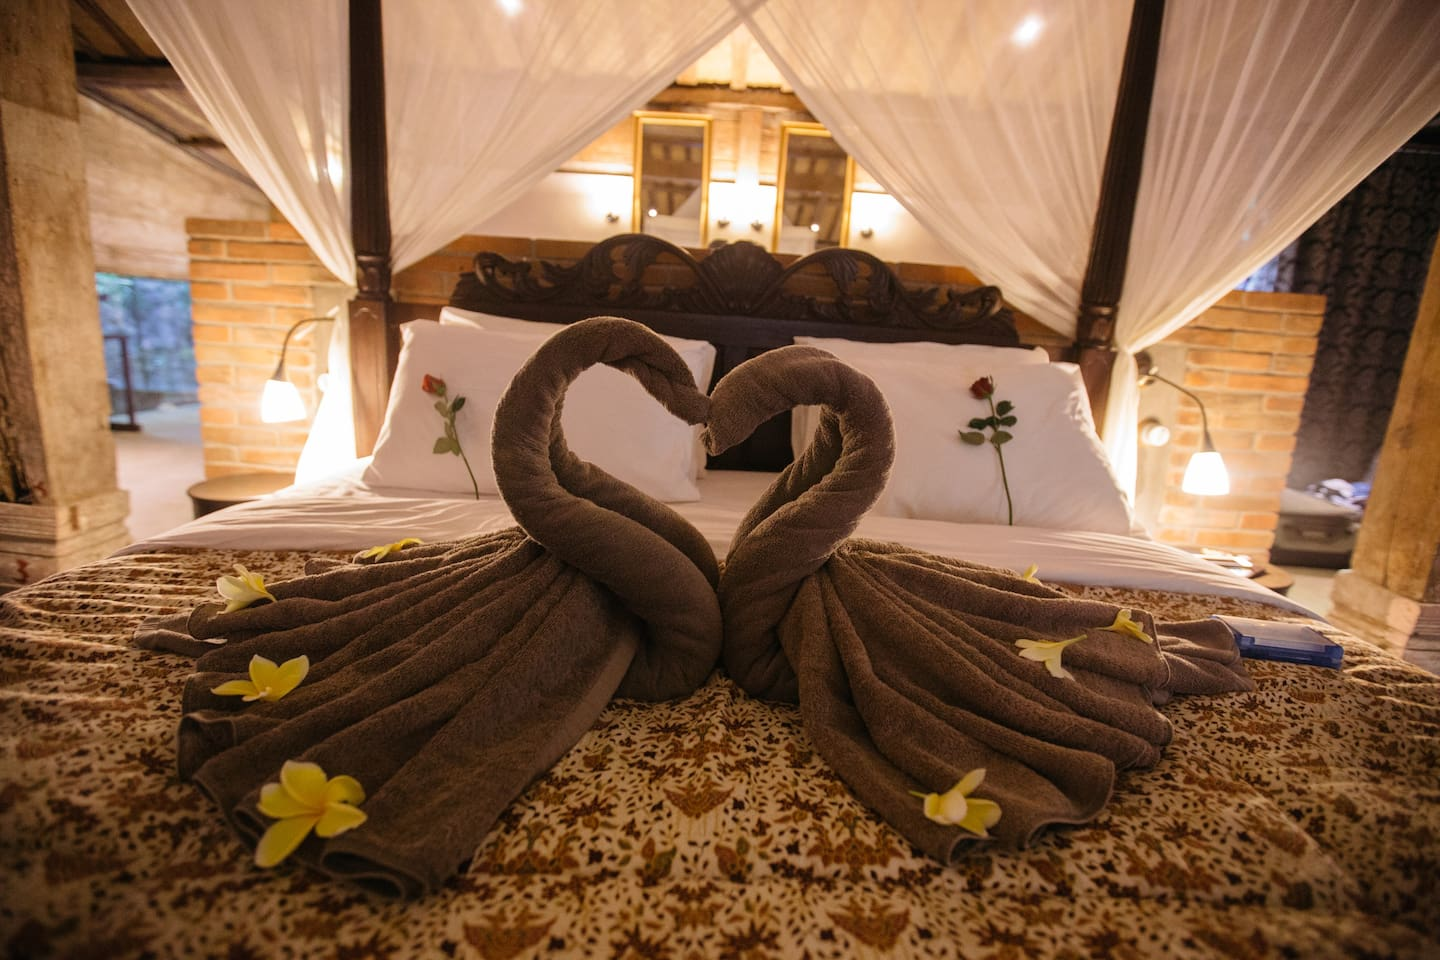 Romance is in the air in ALL FEBRUARY. Get your Valentine's sweetness and surprise her with a romantic getaway at Wahyu Villa Bali. All bookings in February will be entitled to COMPLIMENTARY in-villa massage upon arrival.